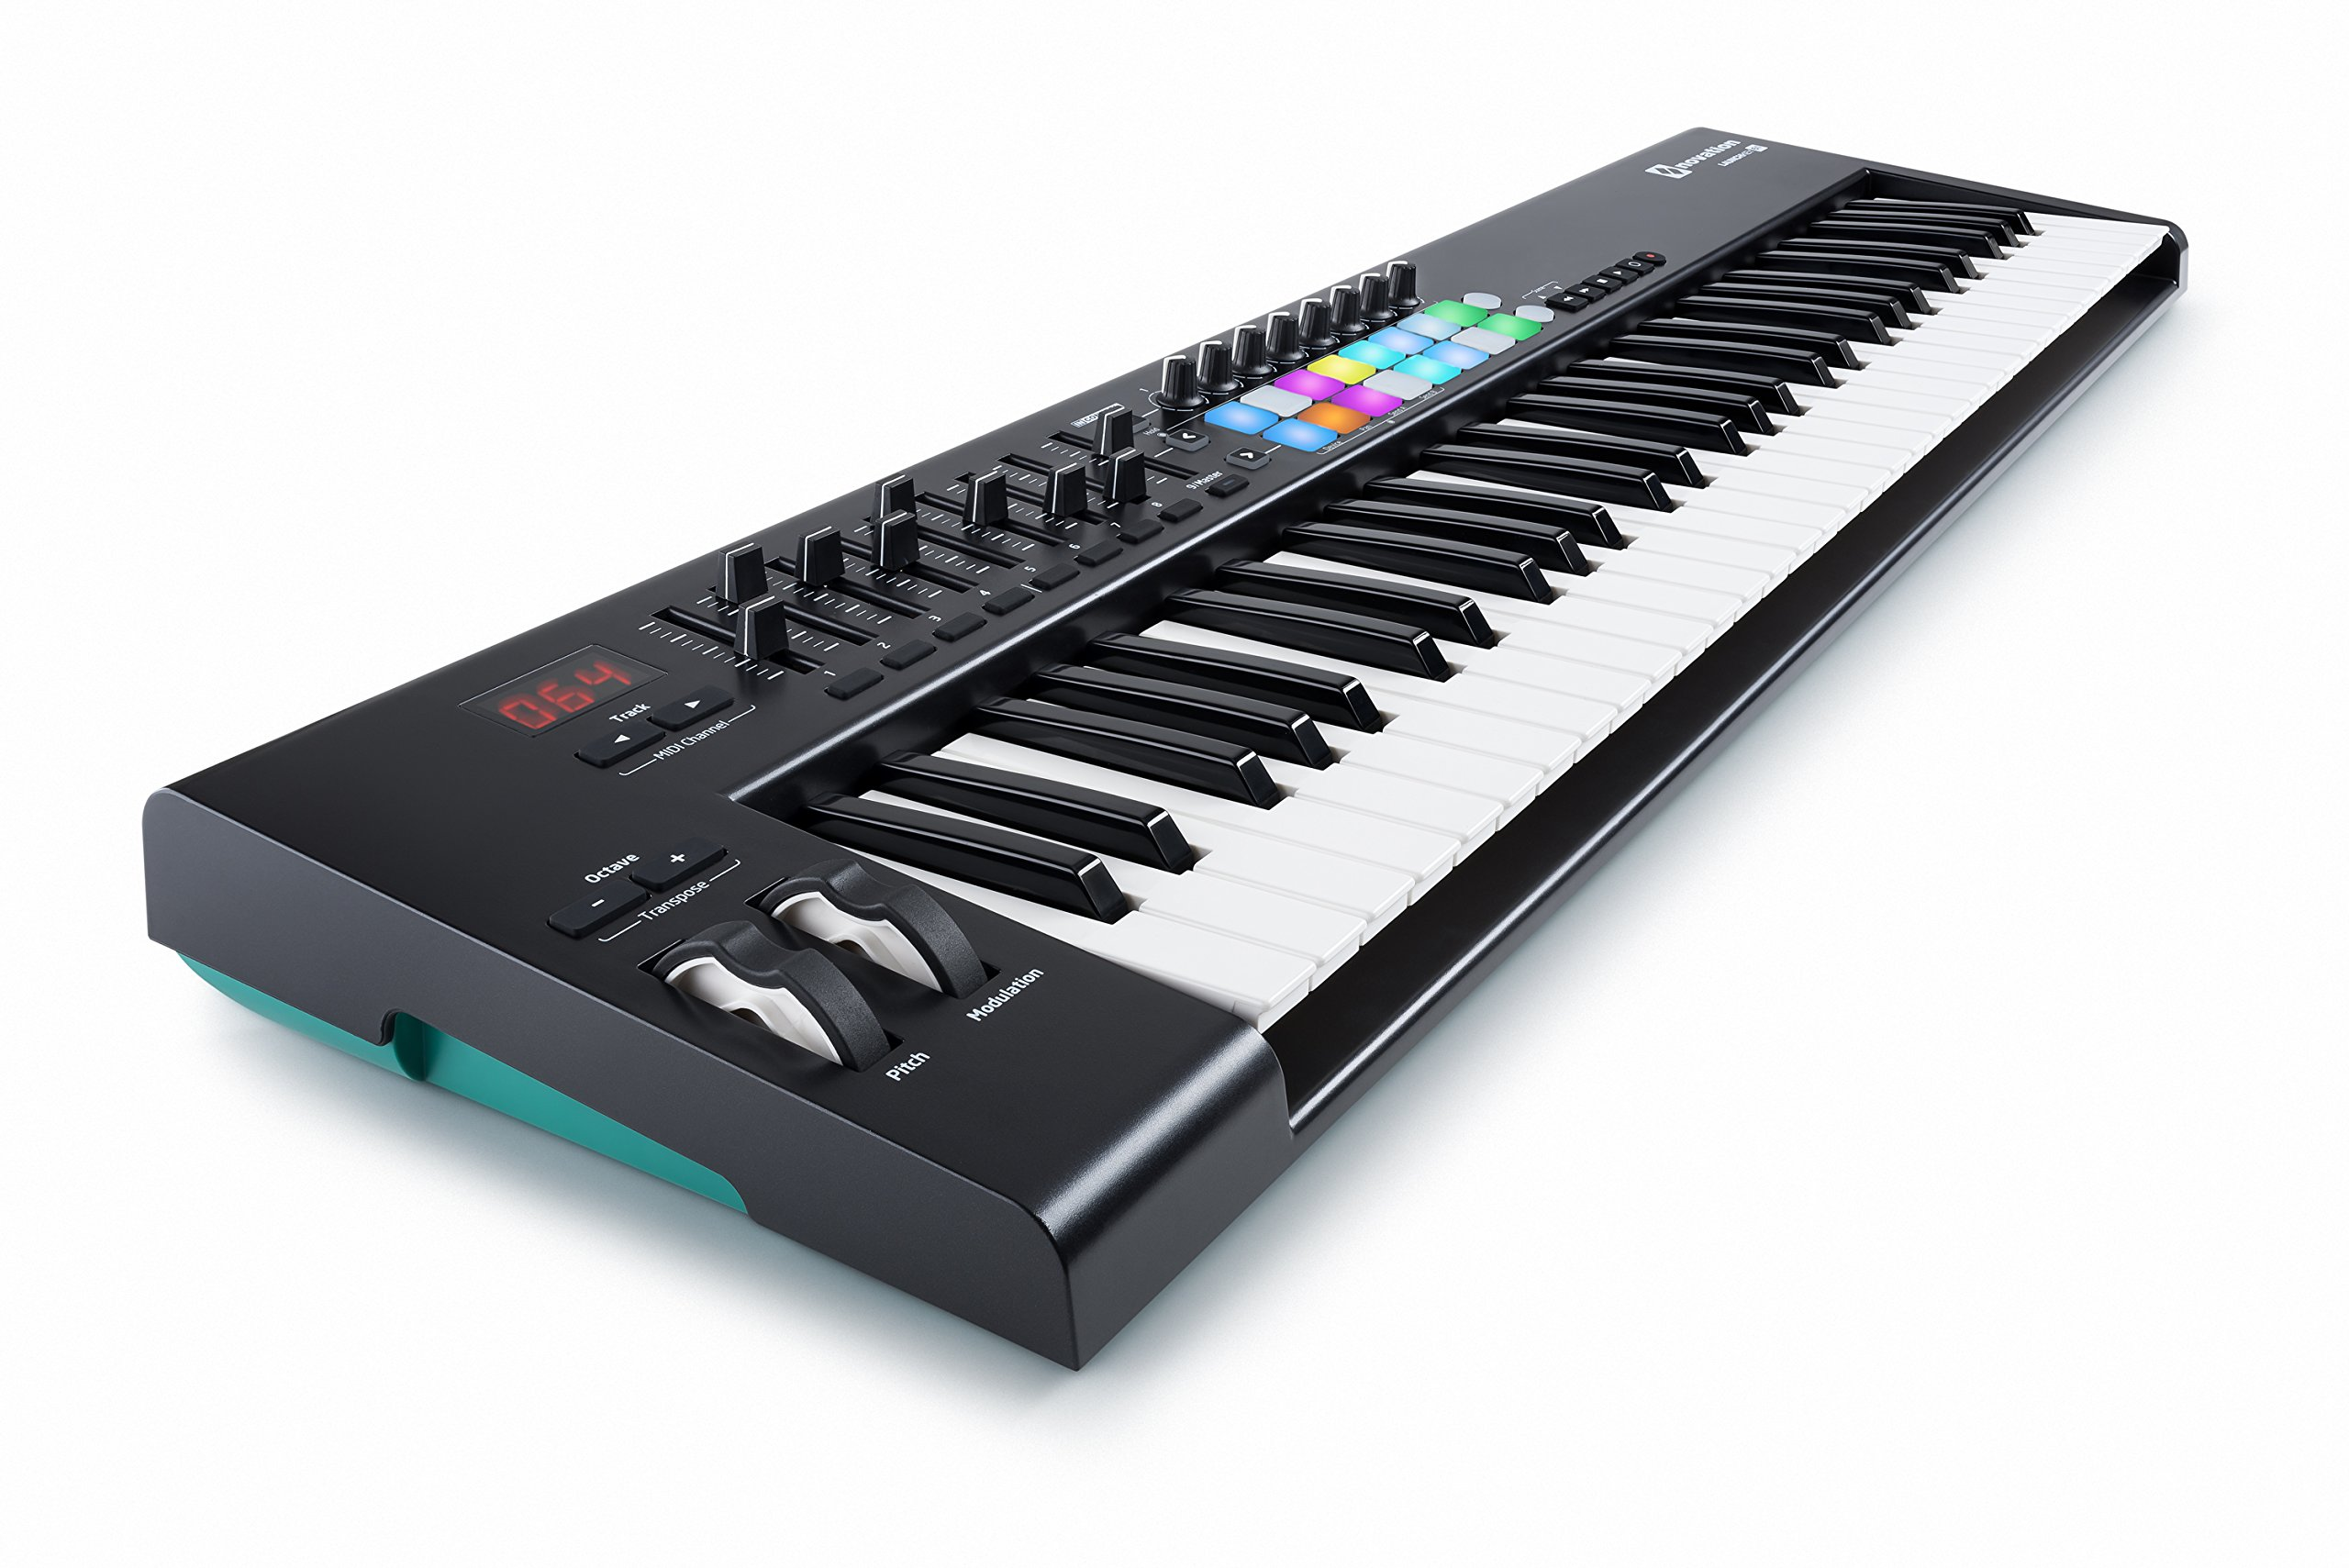 Novation Launchkey 61 USB Keyboard Controller for Ableton Live, 61-Note MK2 Version by Novation (Image #1)